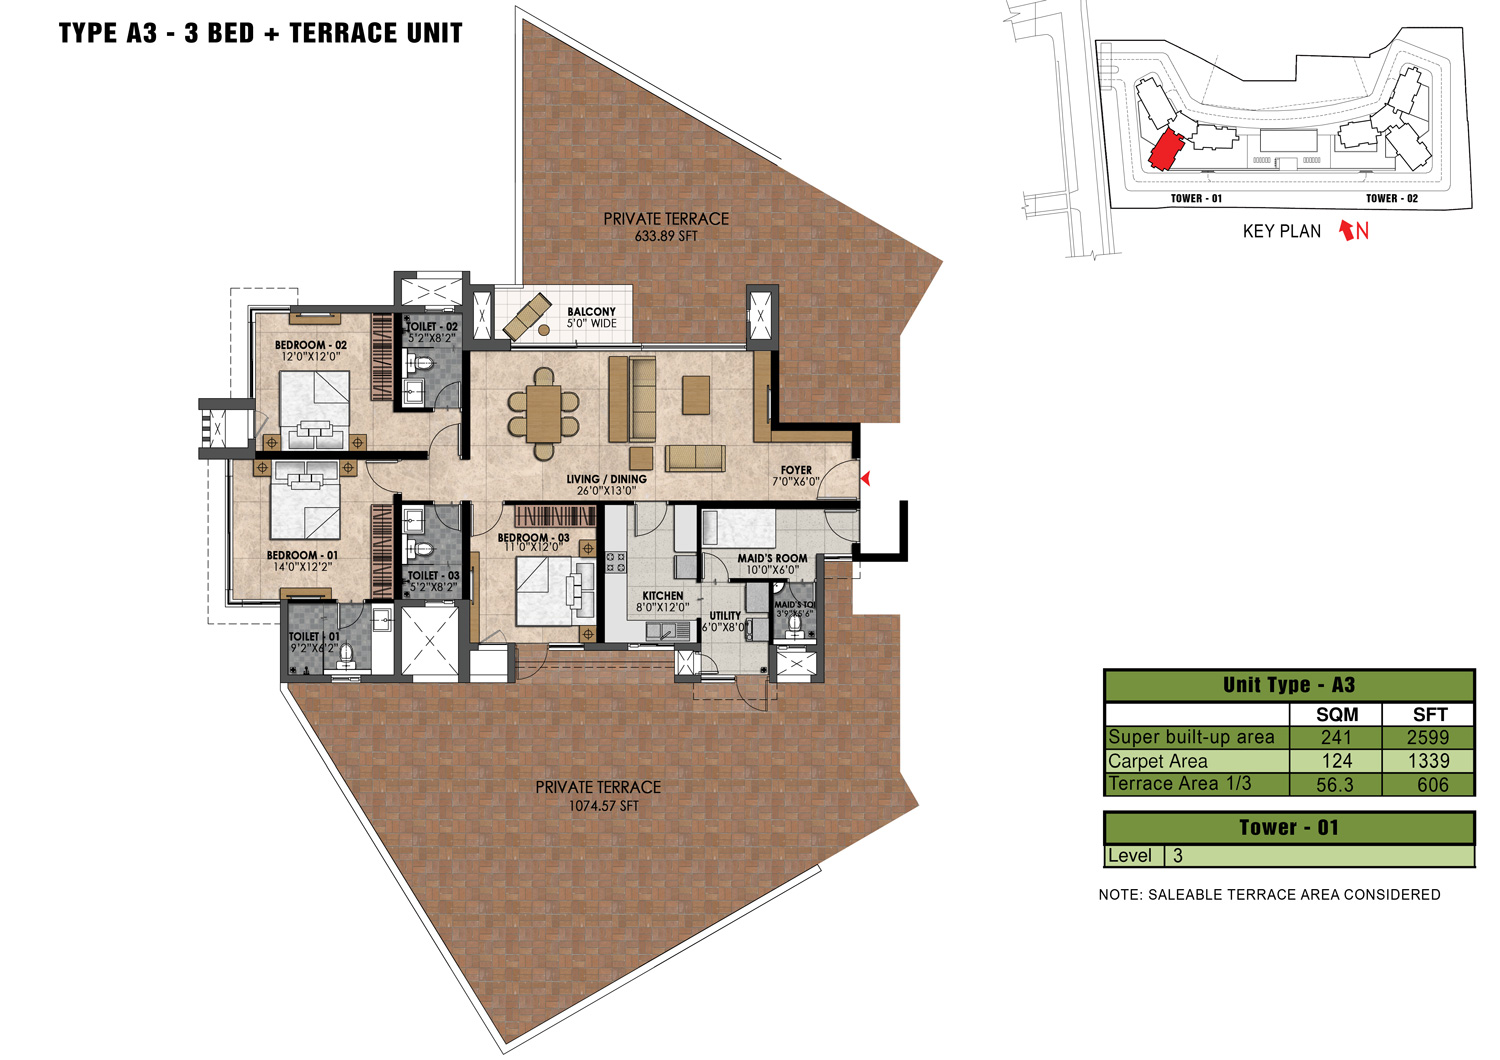 Type A3 - 2599 Sq Ft